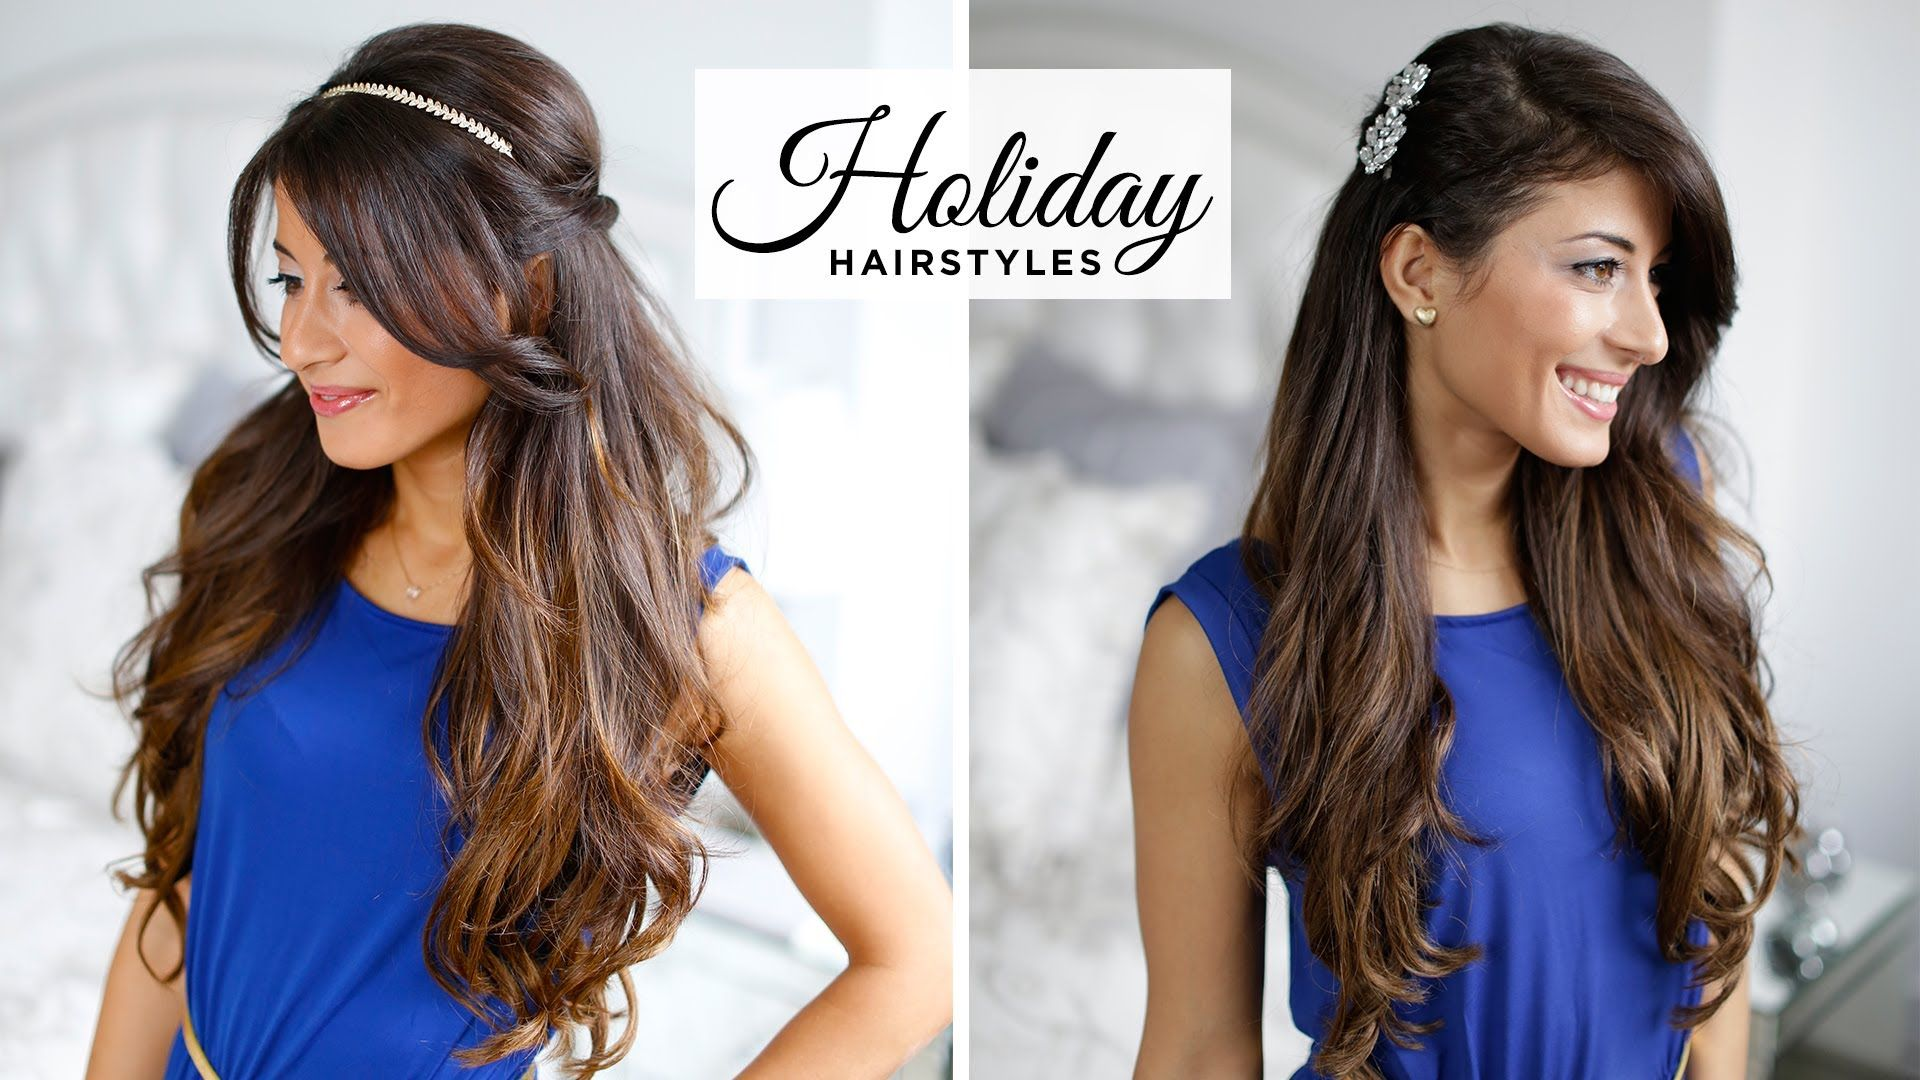 pin by bianca blando on hair | long hair styles, easy party